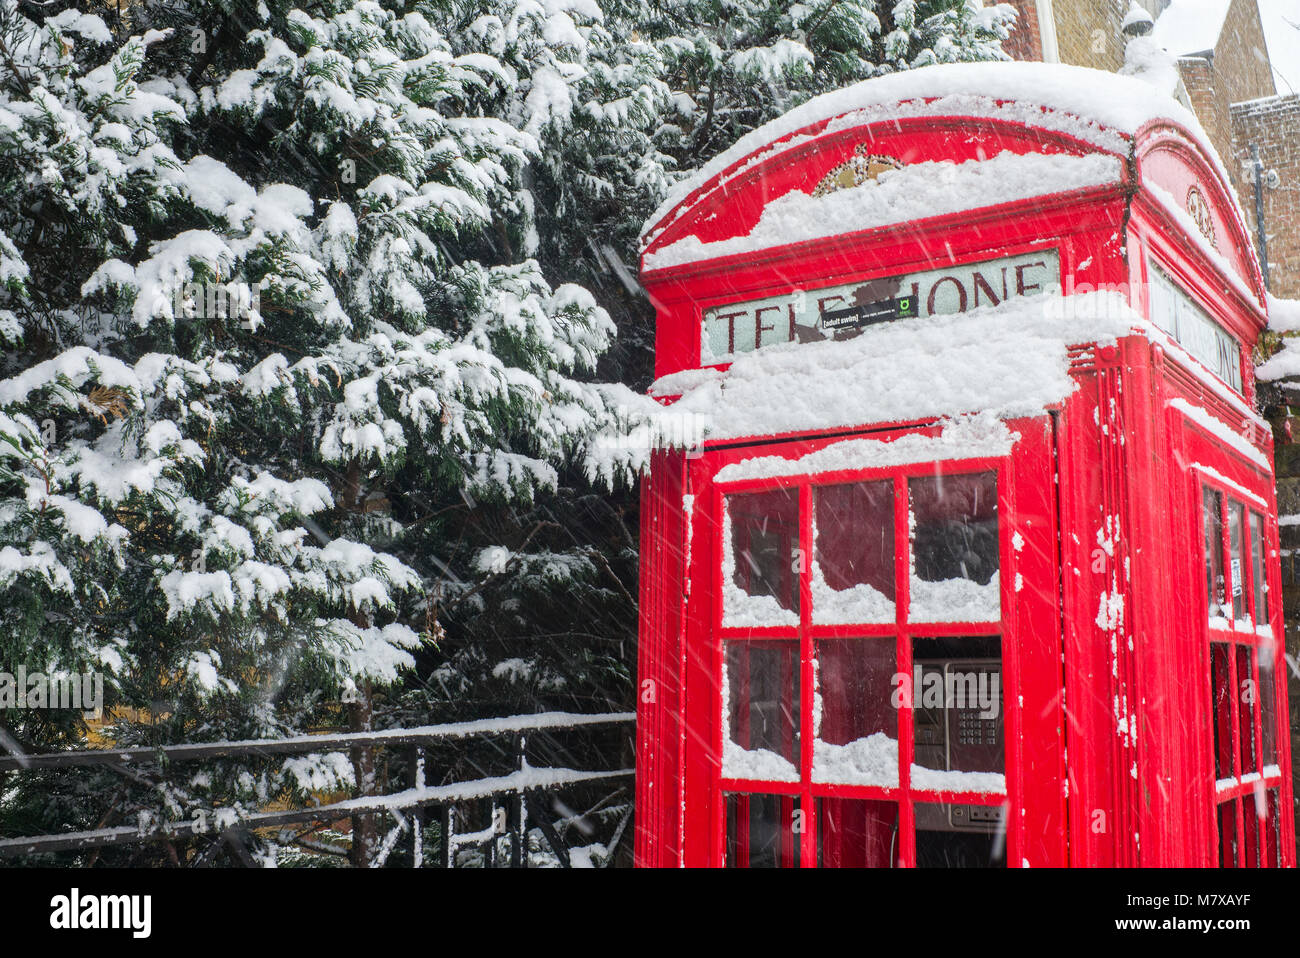 Old fashioned traditional British red public telephone box covered in snow beside snow covered branches of hedge - Stock Image